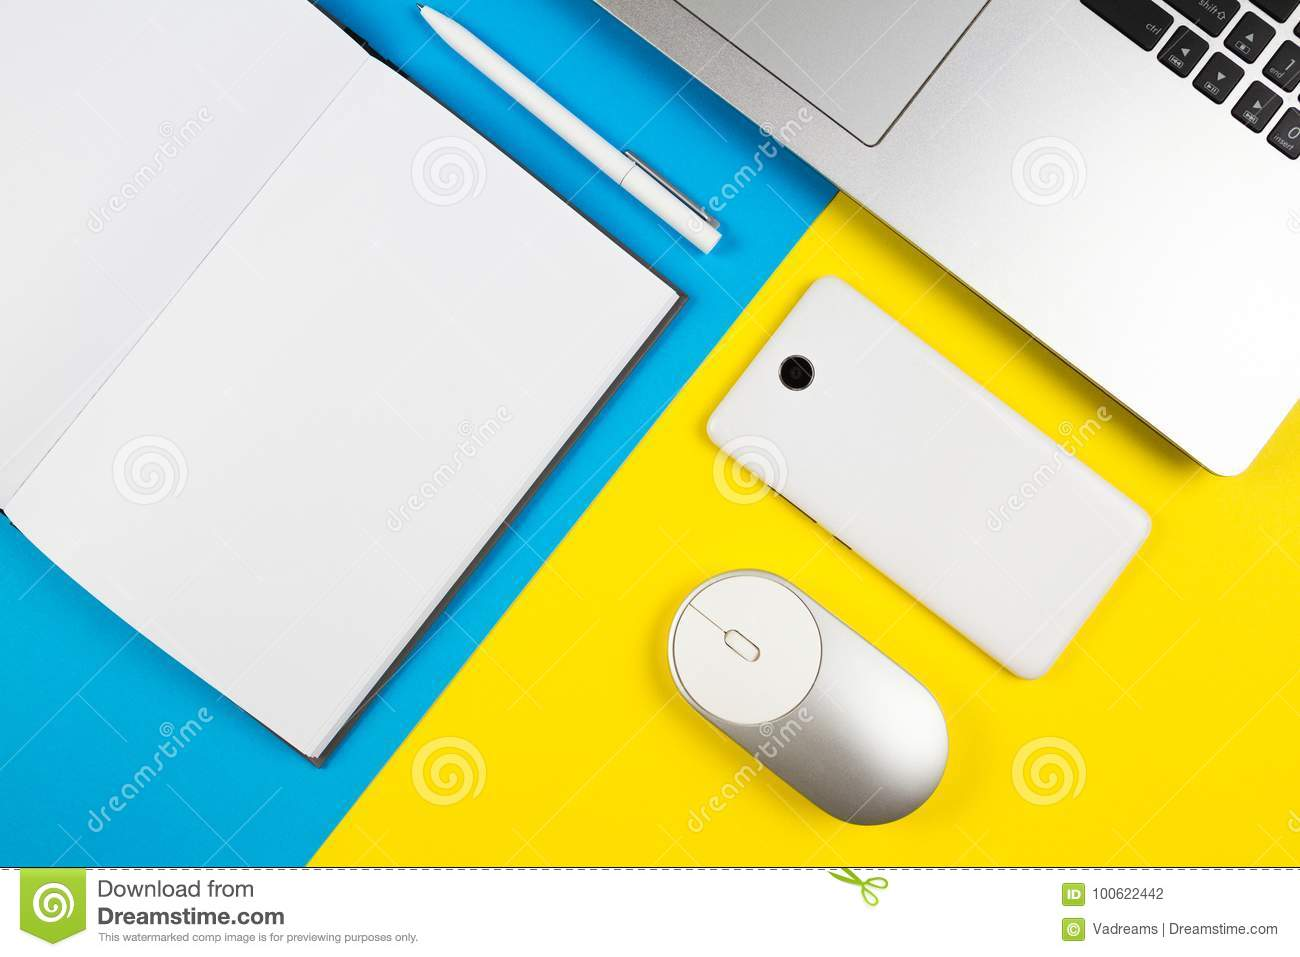 Modern workplace with notebook, computer mouse, mobile phone and white pen on blue and yellow color background